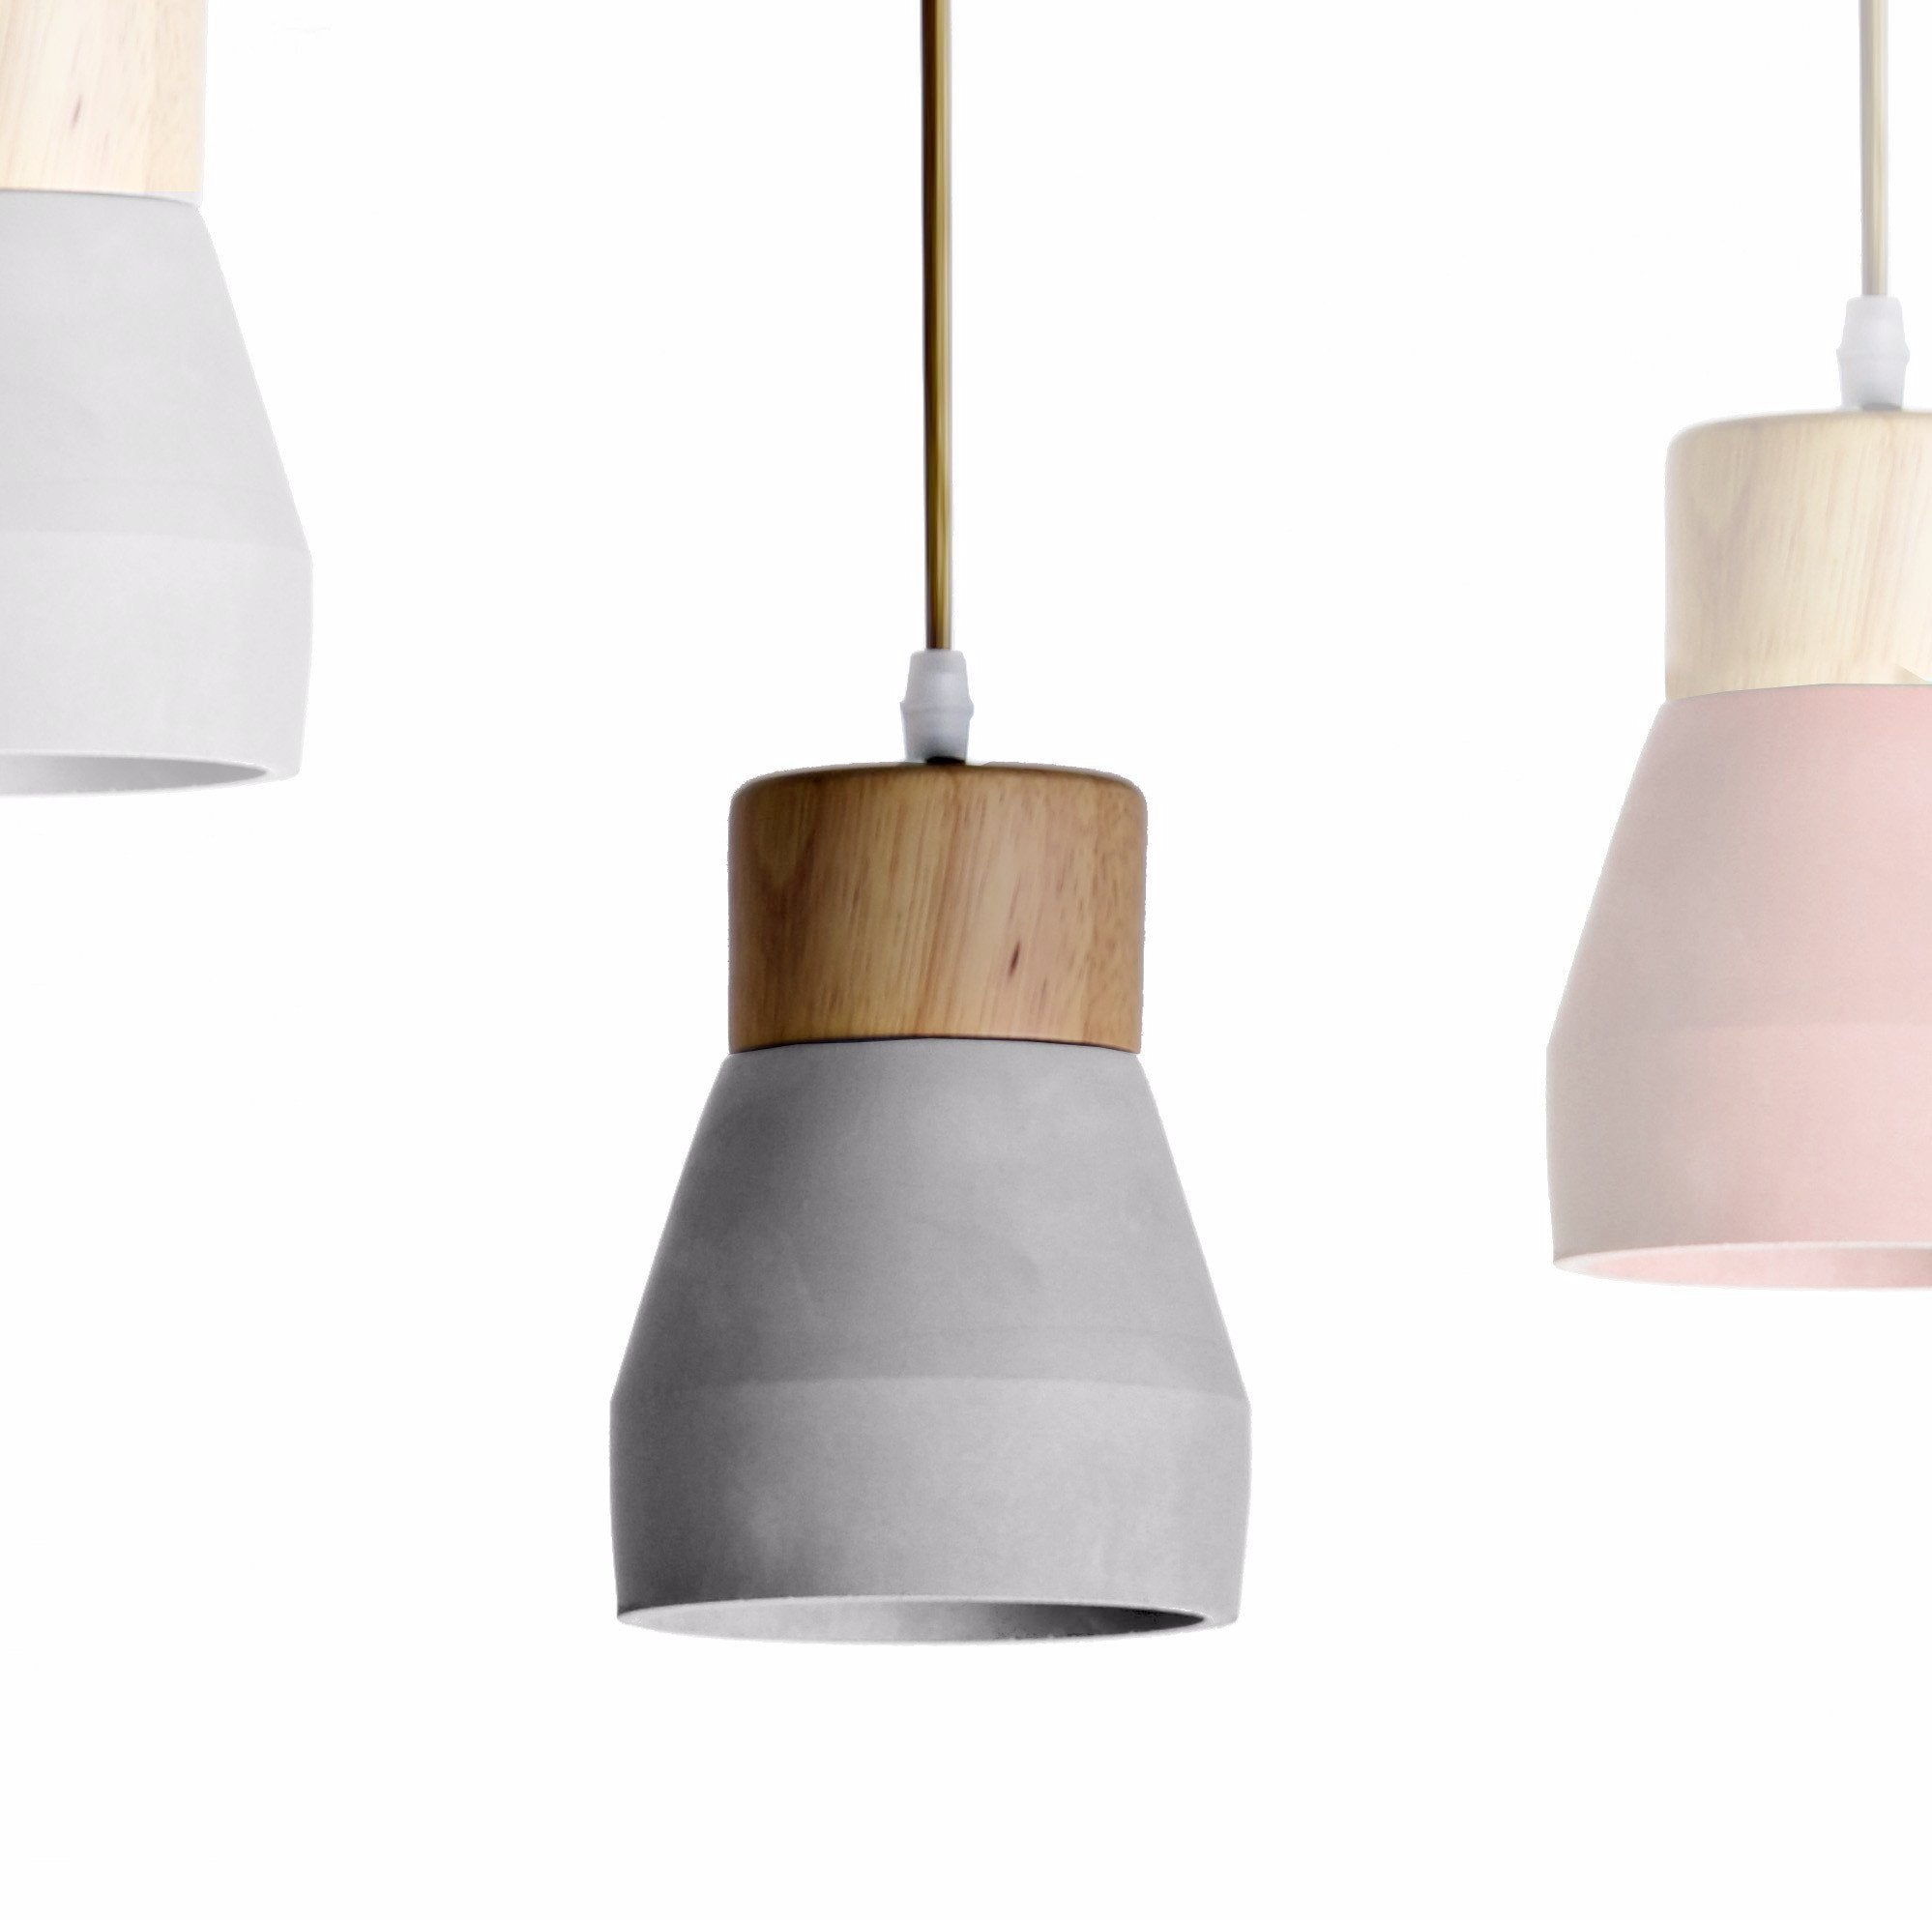 wood pendant lighting. Pendant Lamp - Concrete And Wood BP0686W+G Lighting